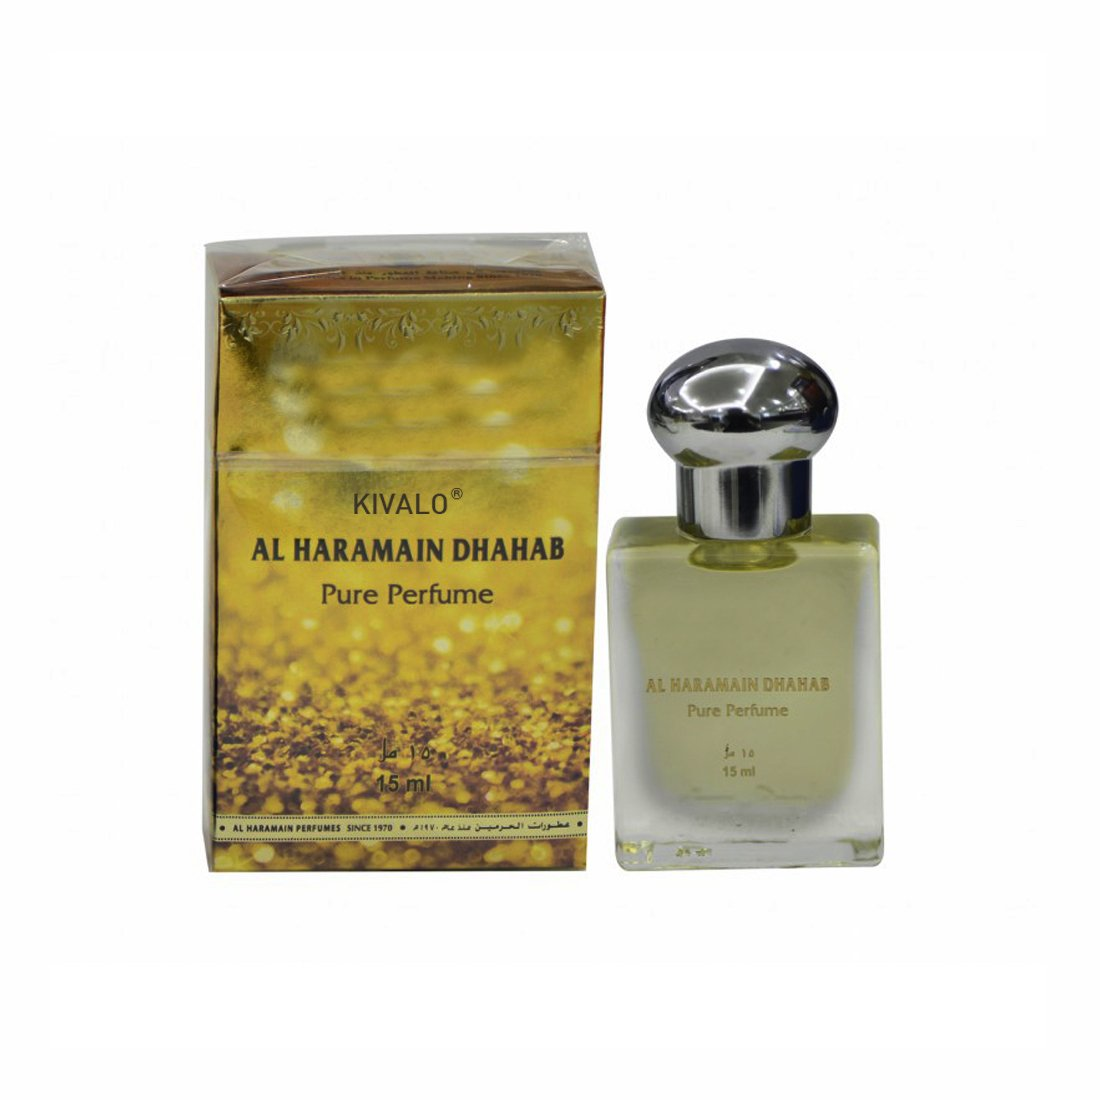 Al Haramain Million & Dhahab Fragrance Pure Original Roll on Perfume Oil Pack of 2 (Attar) - 2 x 15 ml